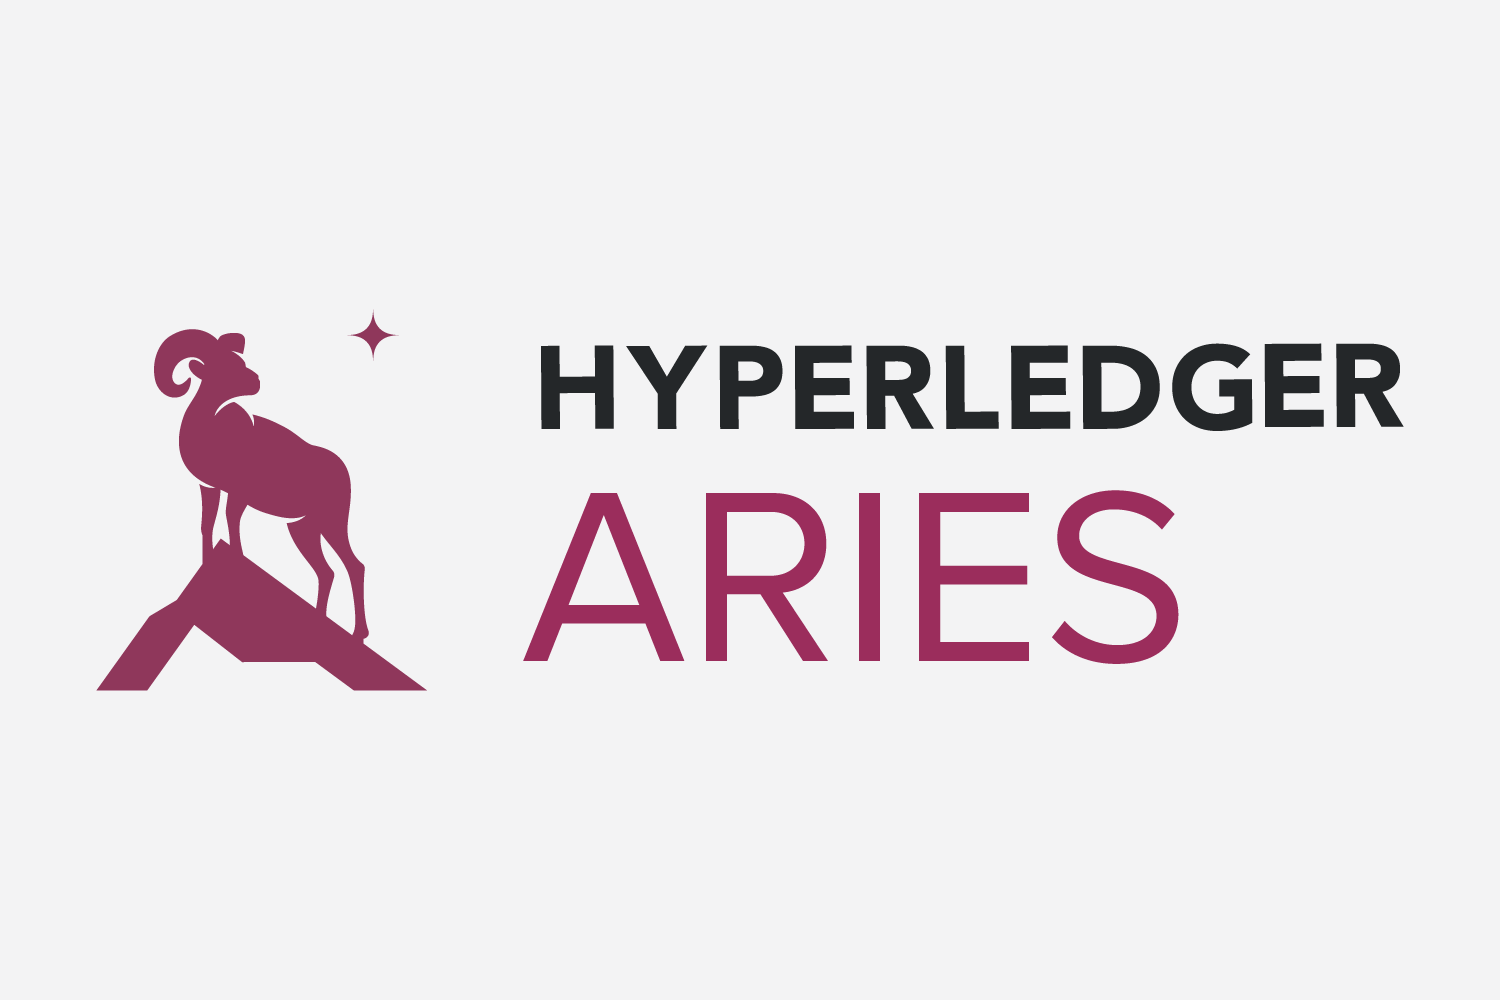 Hyperledger Aries